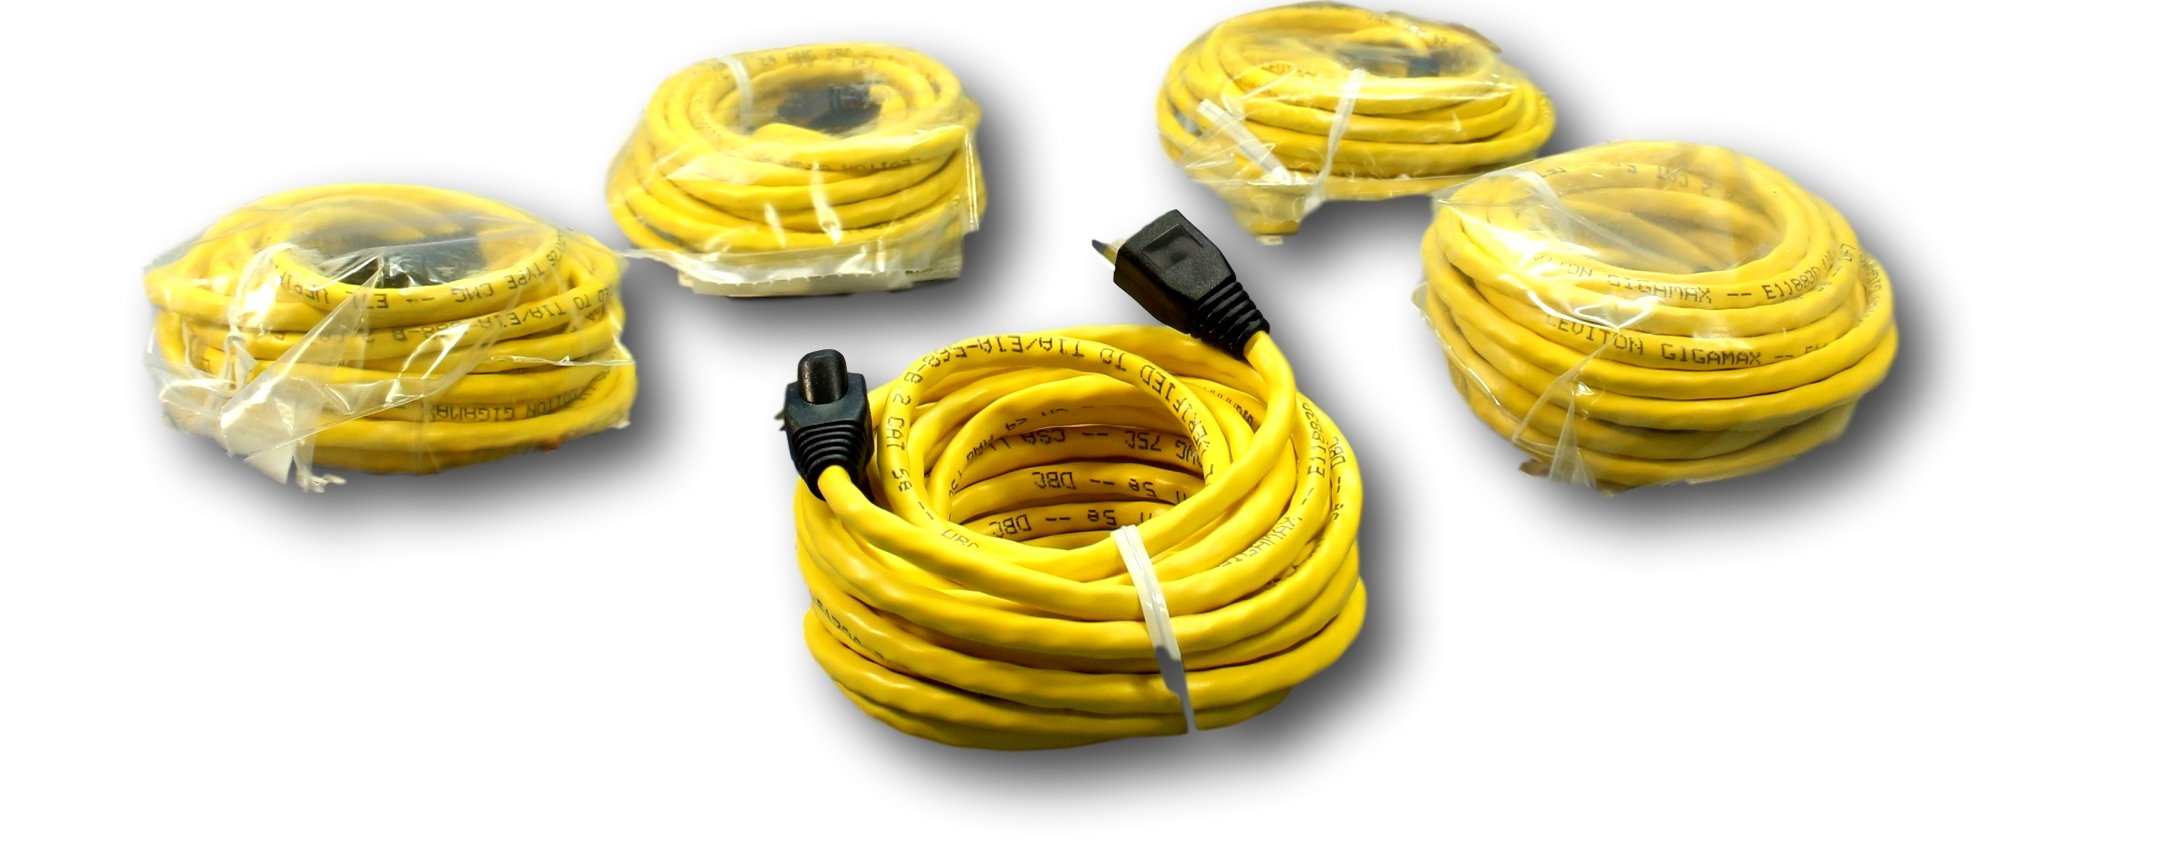 Ethernet Patch Cords For Fast Networking Cat 5e Cat 6